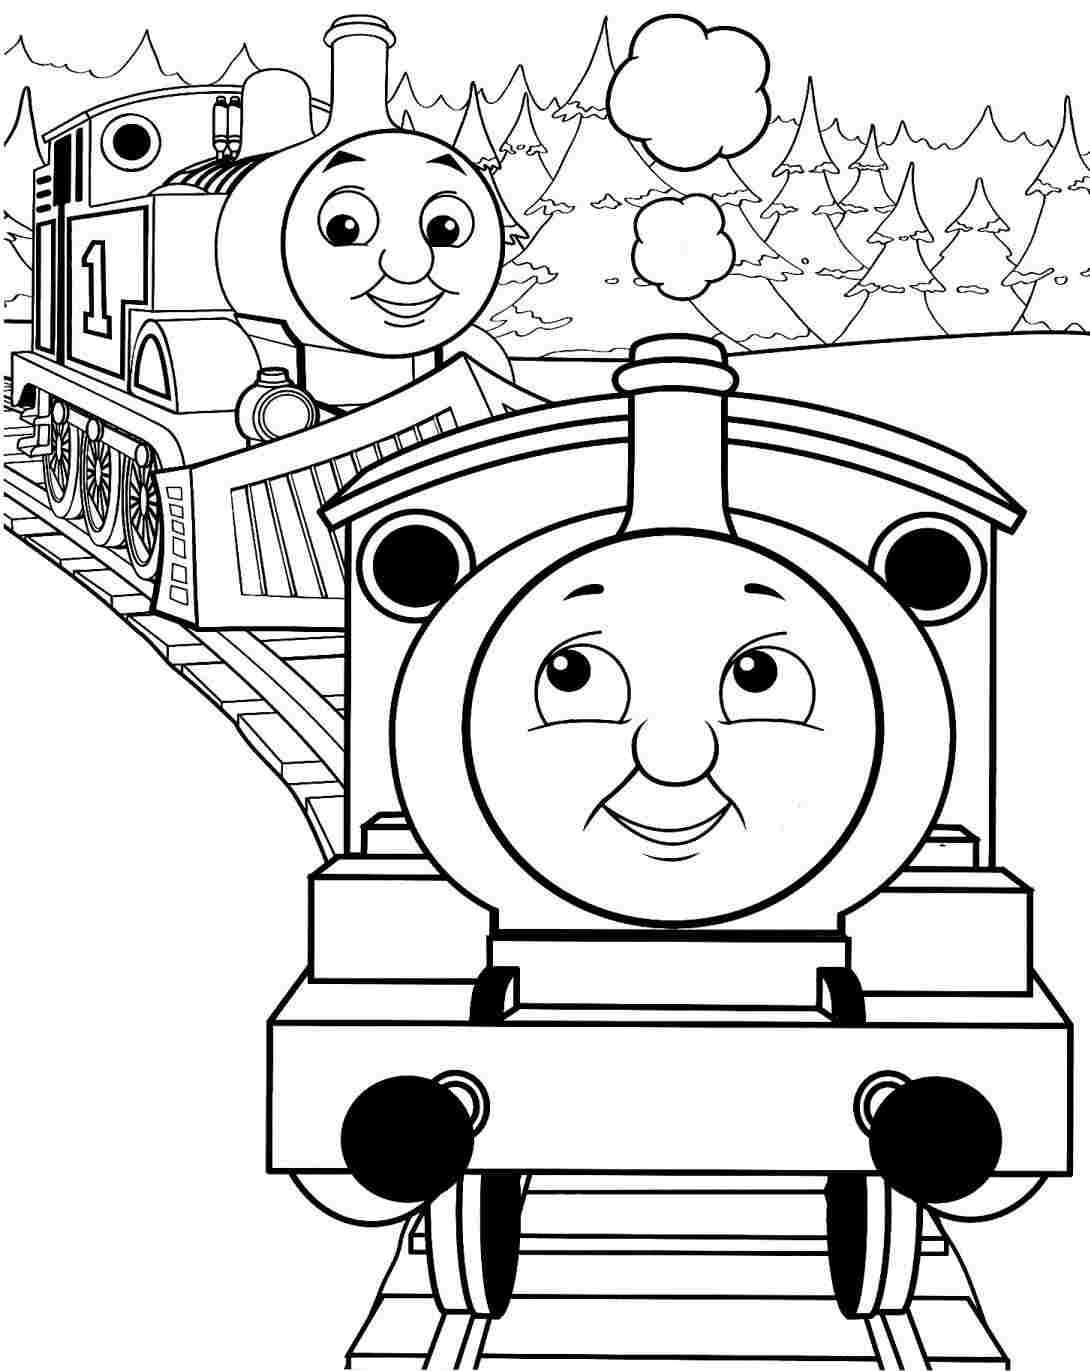 Train boxcar coloring pages - Simple Thomas The Train Coloring Pages Thomas The Train Coloring